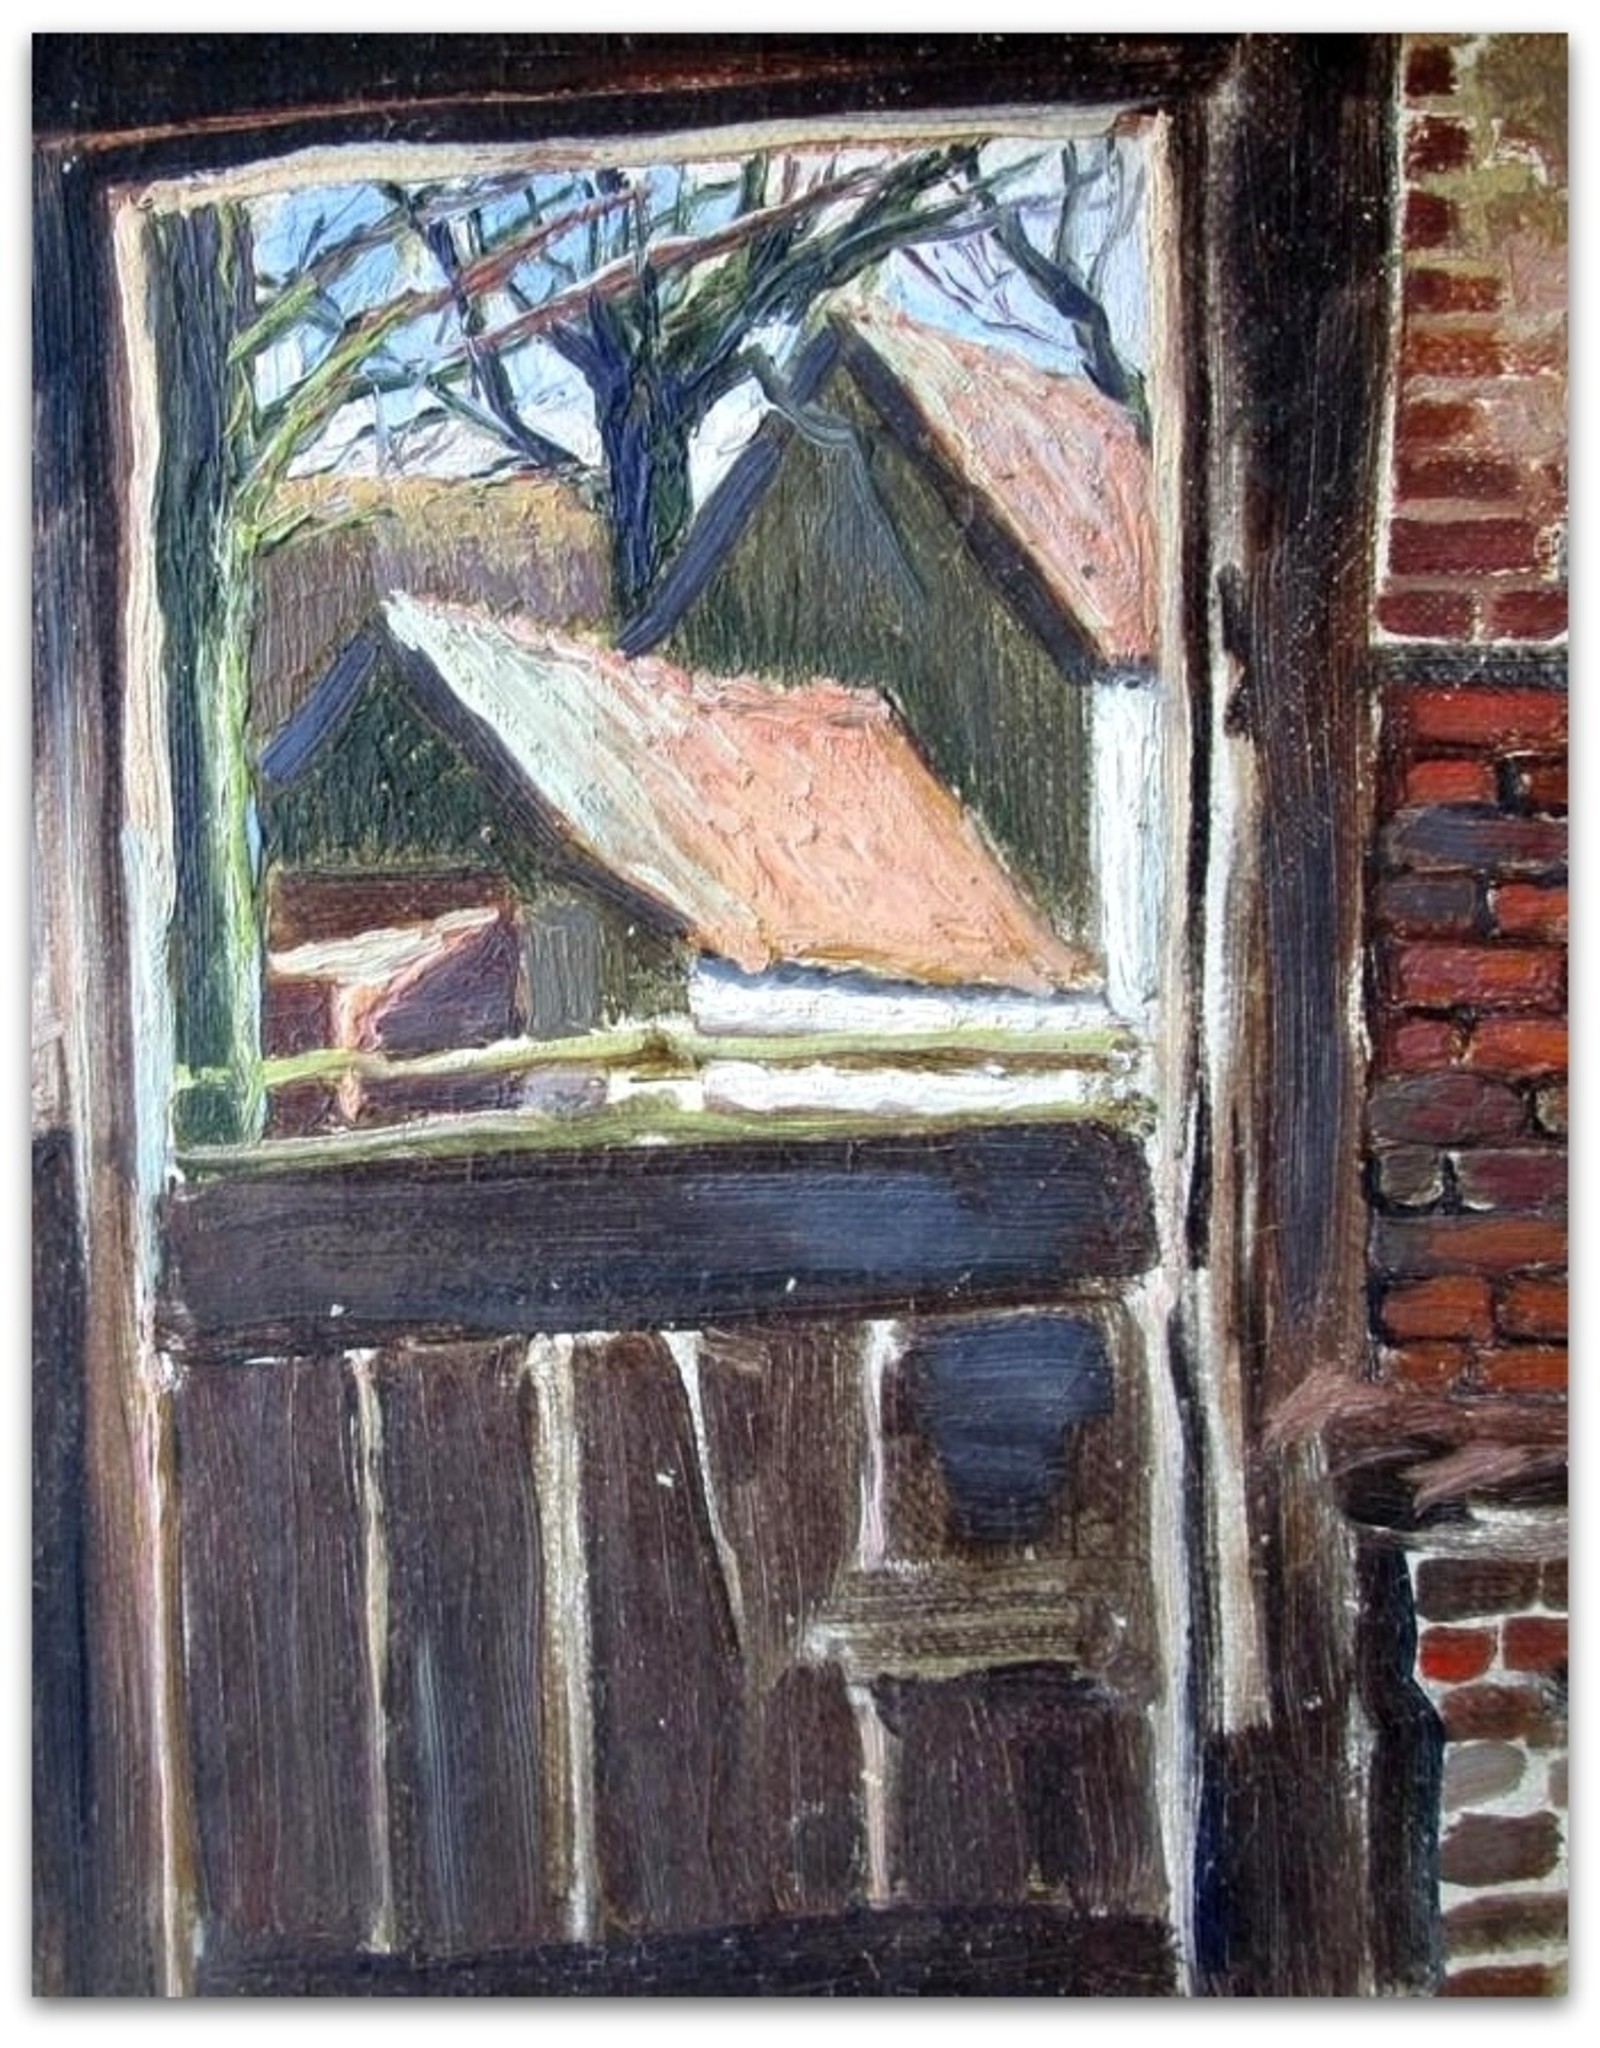 Arie van der Boon - [View of a farm from the barn]